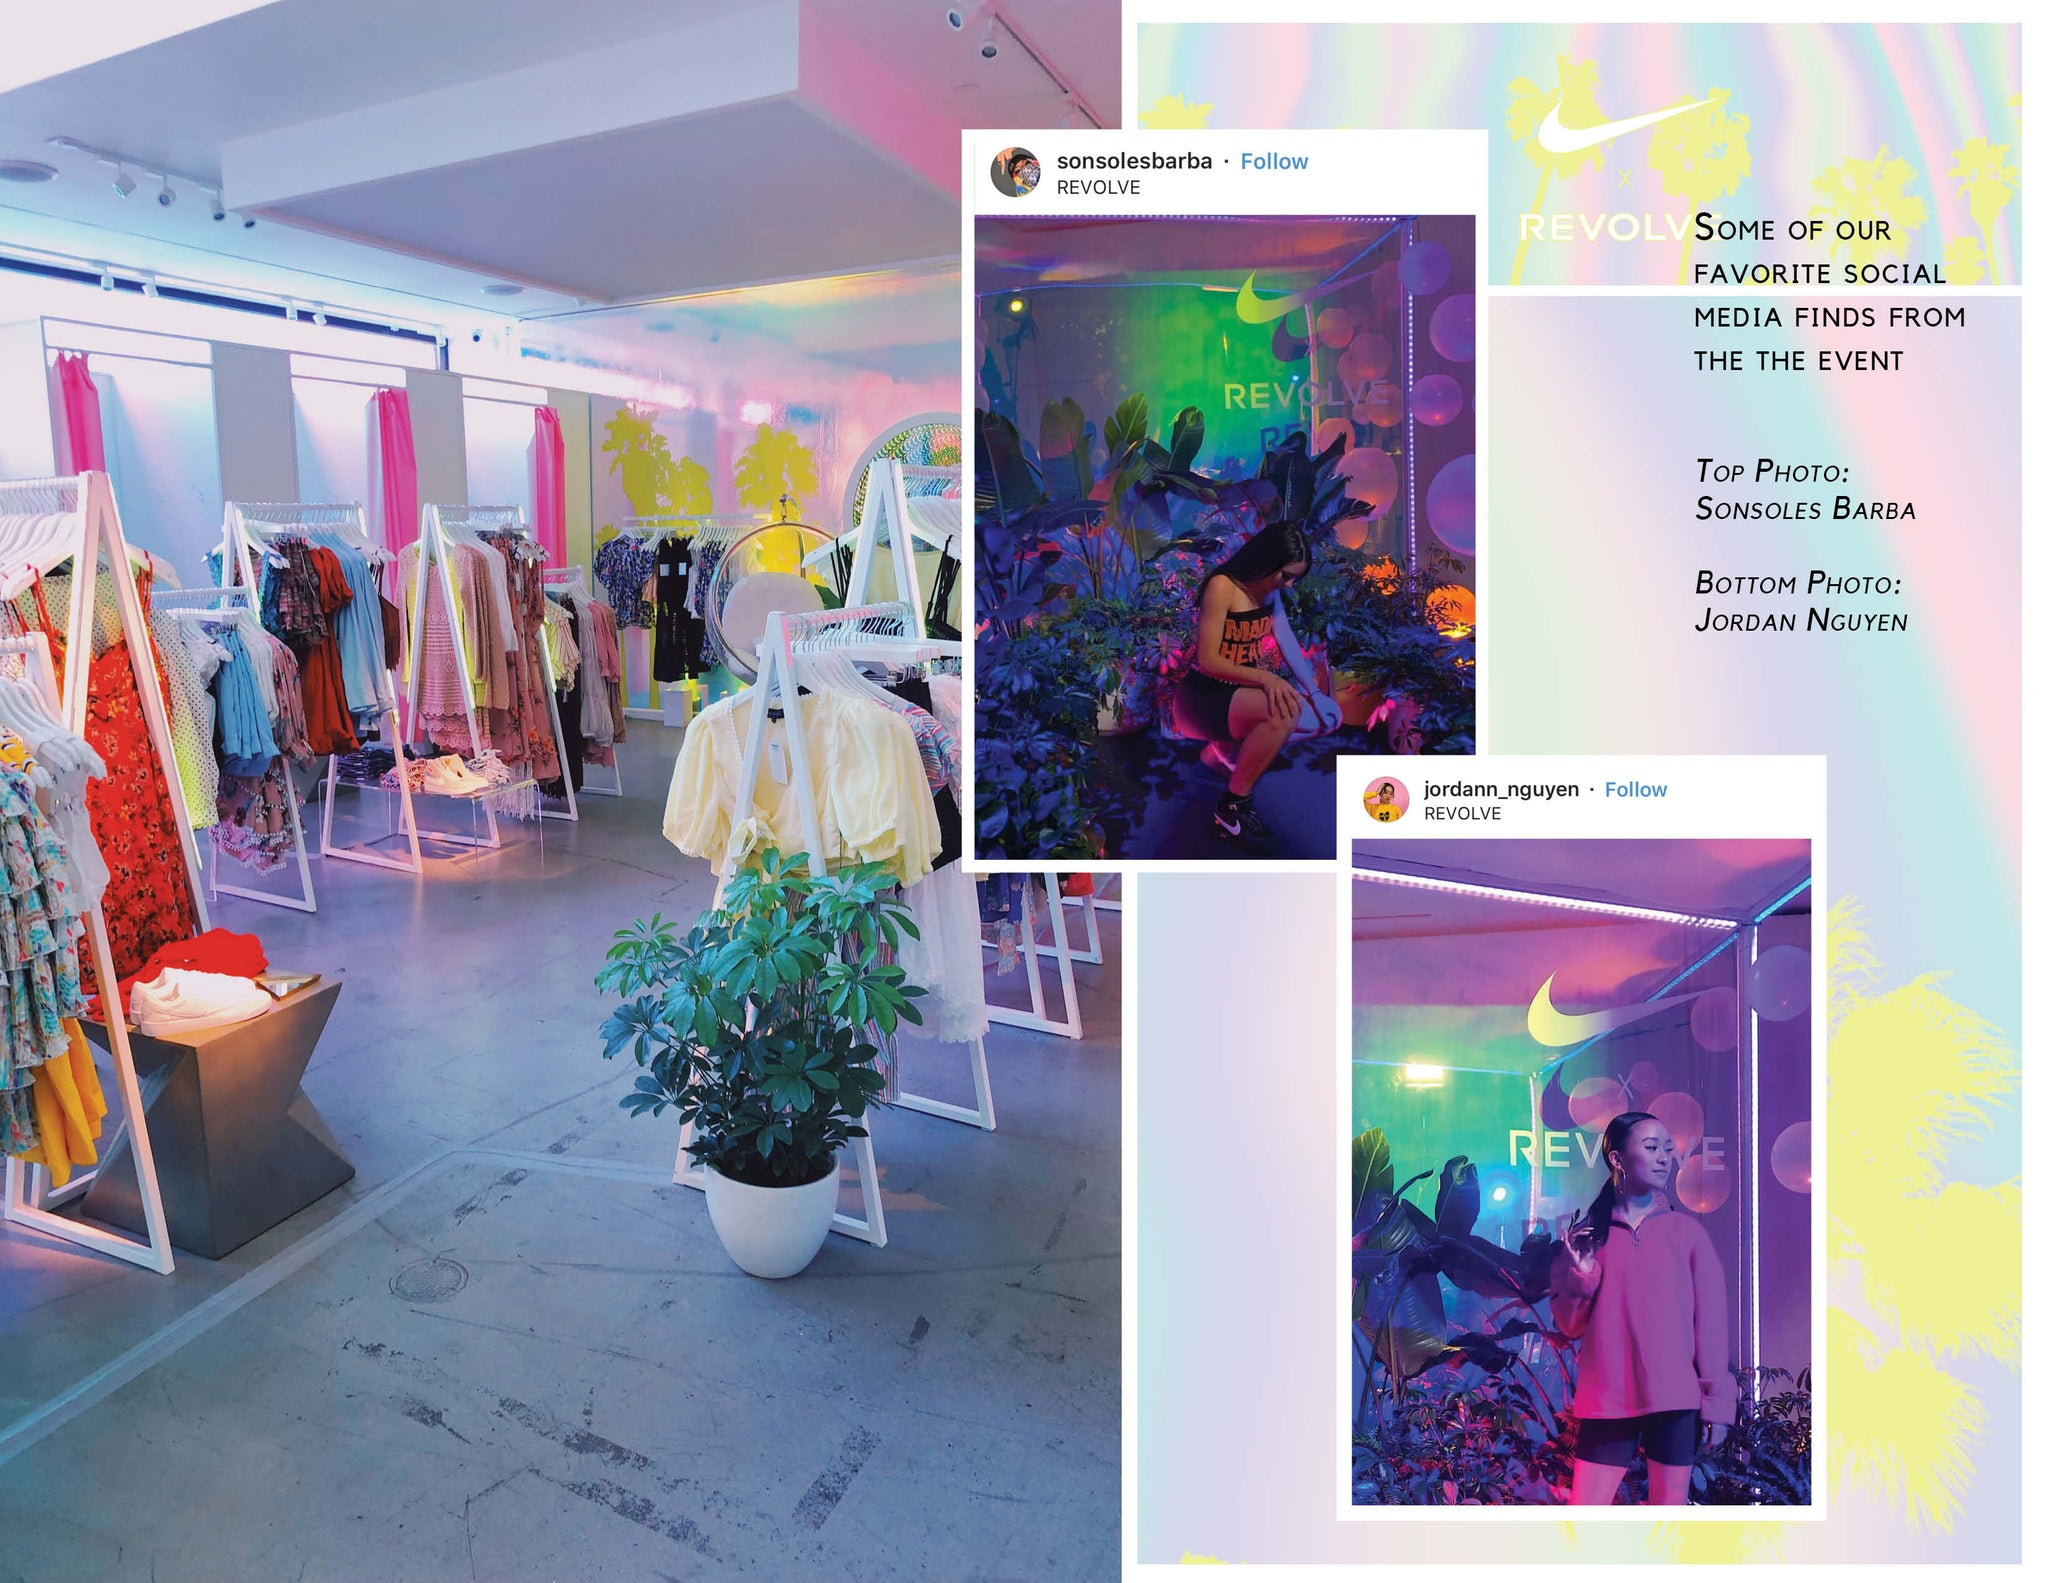 © Wildflora 2019 Nike x Revolve Pop-Up Event Los Angeles florist Ventura Blvd Studio City California Original Farmers Market The Grove delivery floral bloom plant arrangement color palette pastel light pale pink blue green purple neon Lisa Frank yellow chartreuse tree white ceramic custom ceramic planter pot container clothes display palm tree bright fun alive cute hipster active-wear leisure-wear temporary jacket display shop sports bras Jordan Nguyen Sonsoles Barba social media umbrella